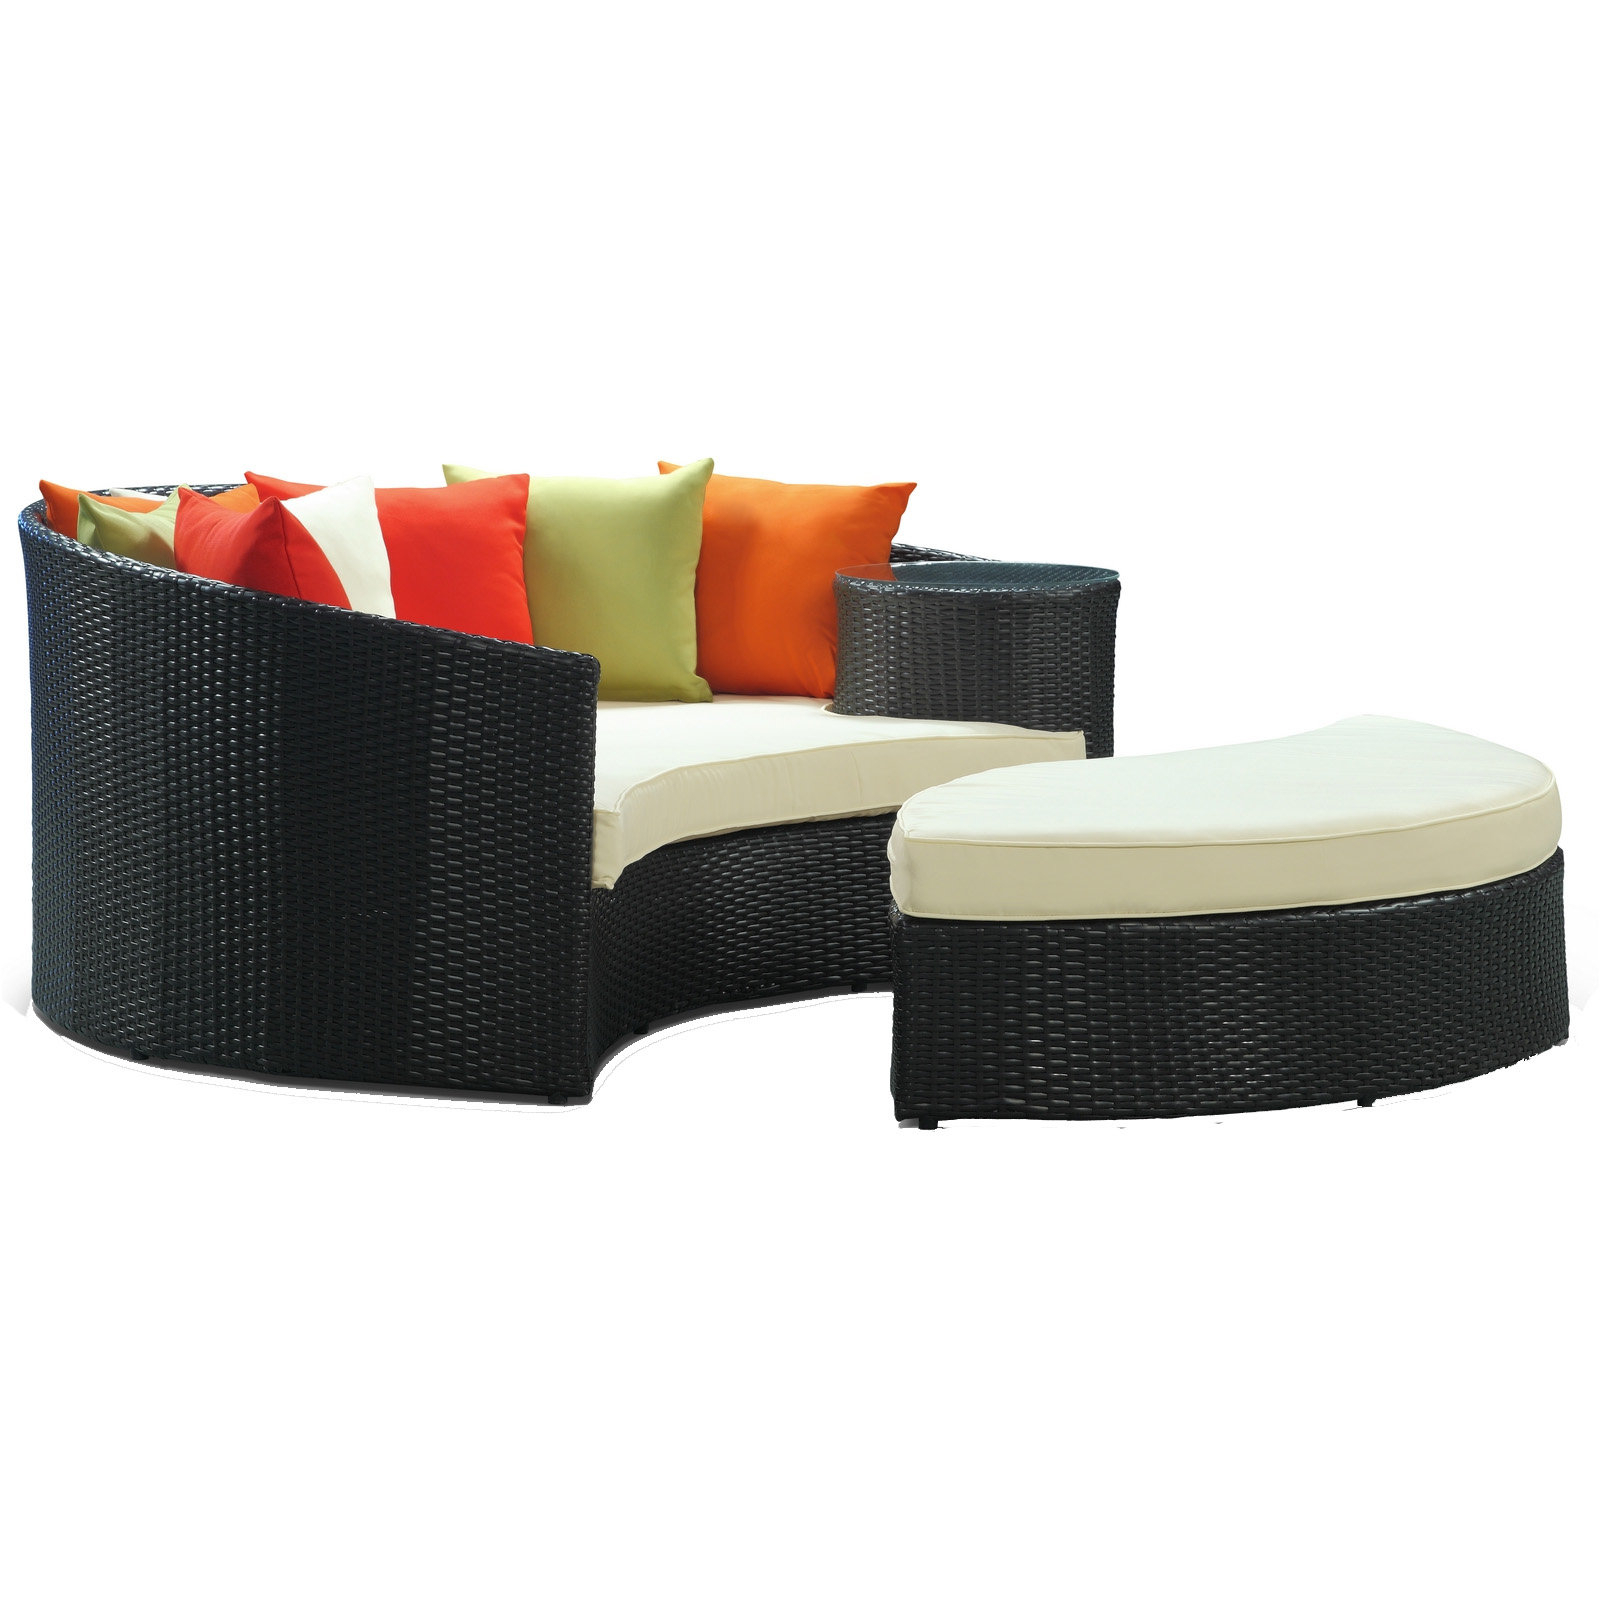 Featured Photo of Greening Outdoor Daybeds With Ottoman & Cushions